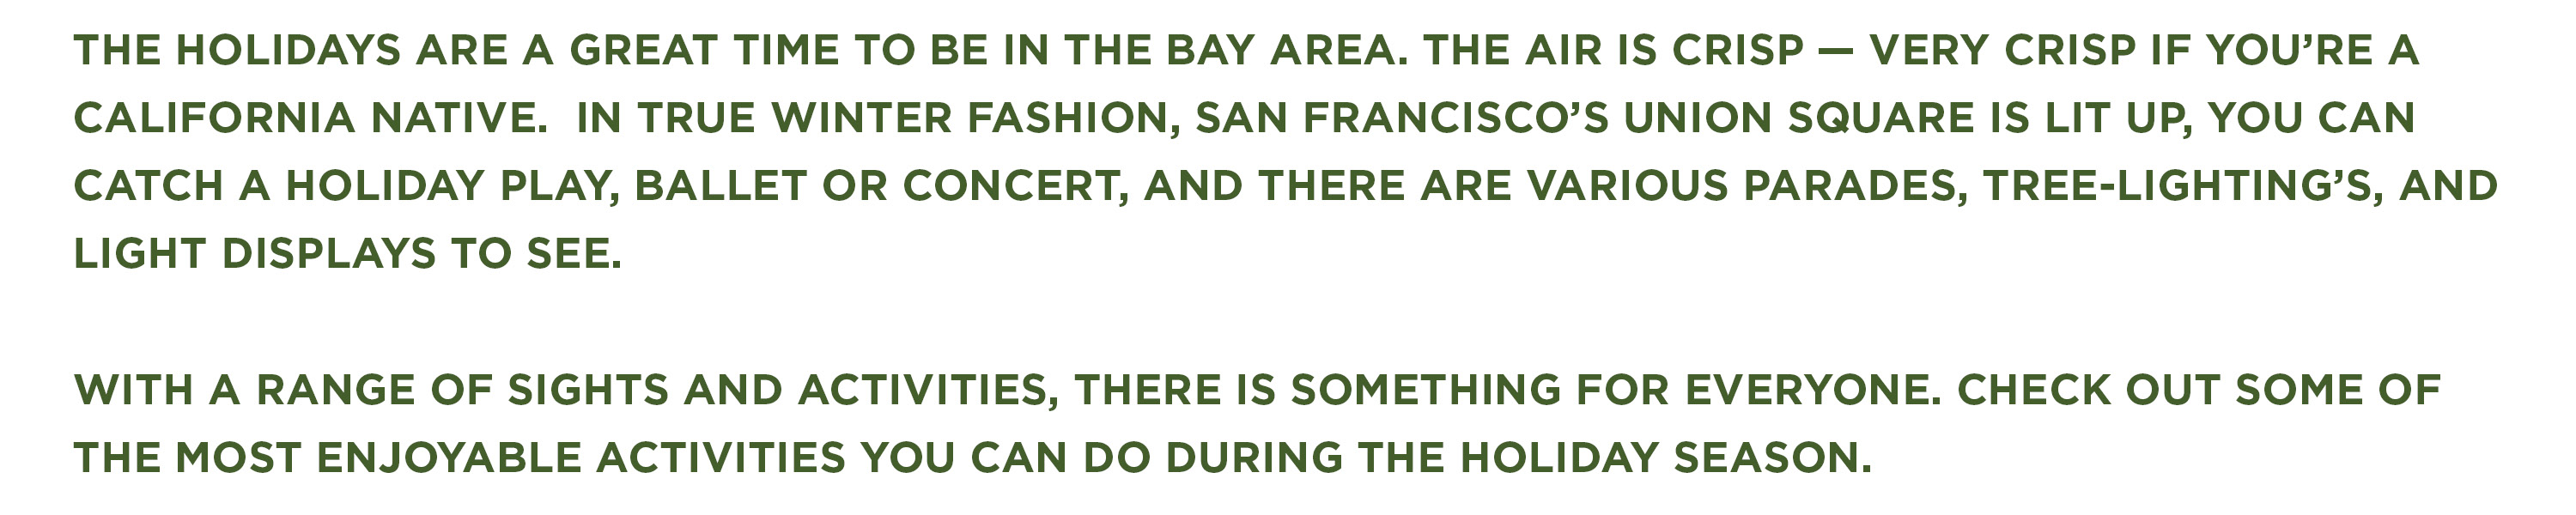 4 Can't Miss Holiday Events in the Bay Area Blog - header text